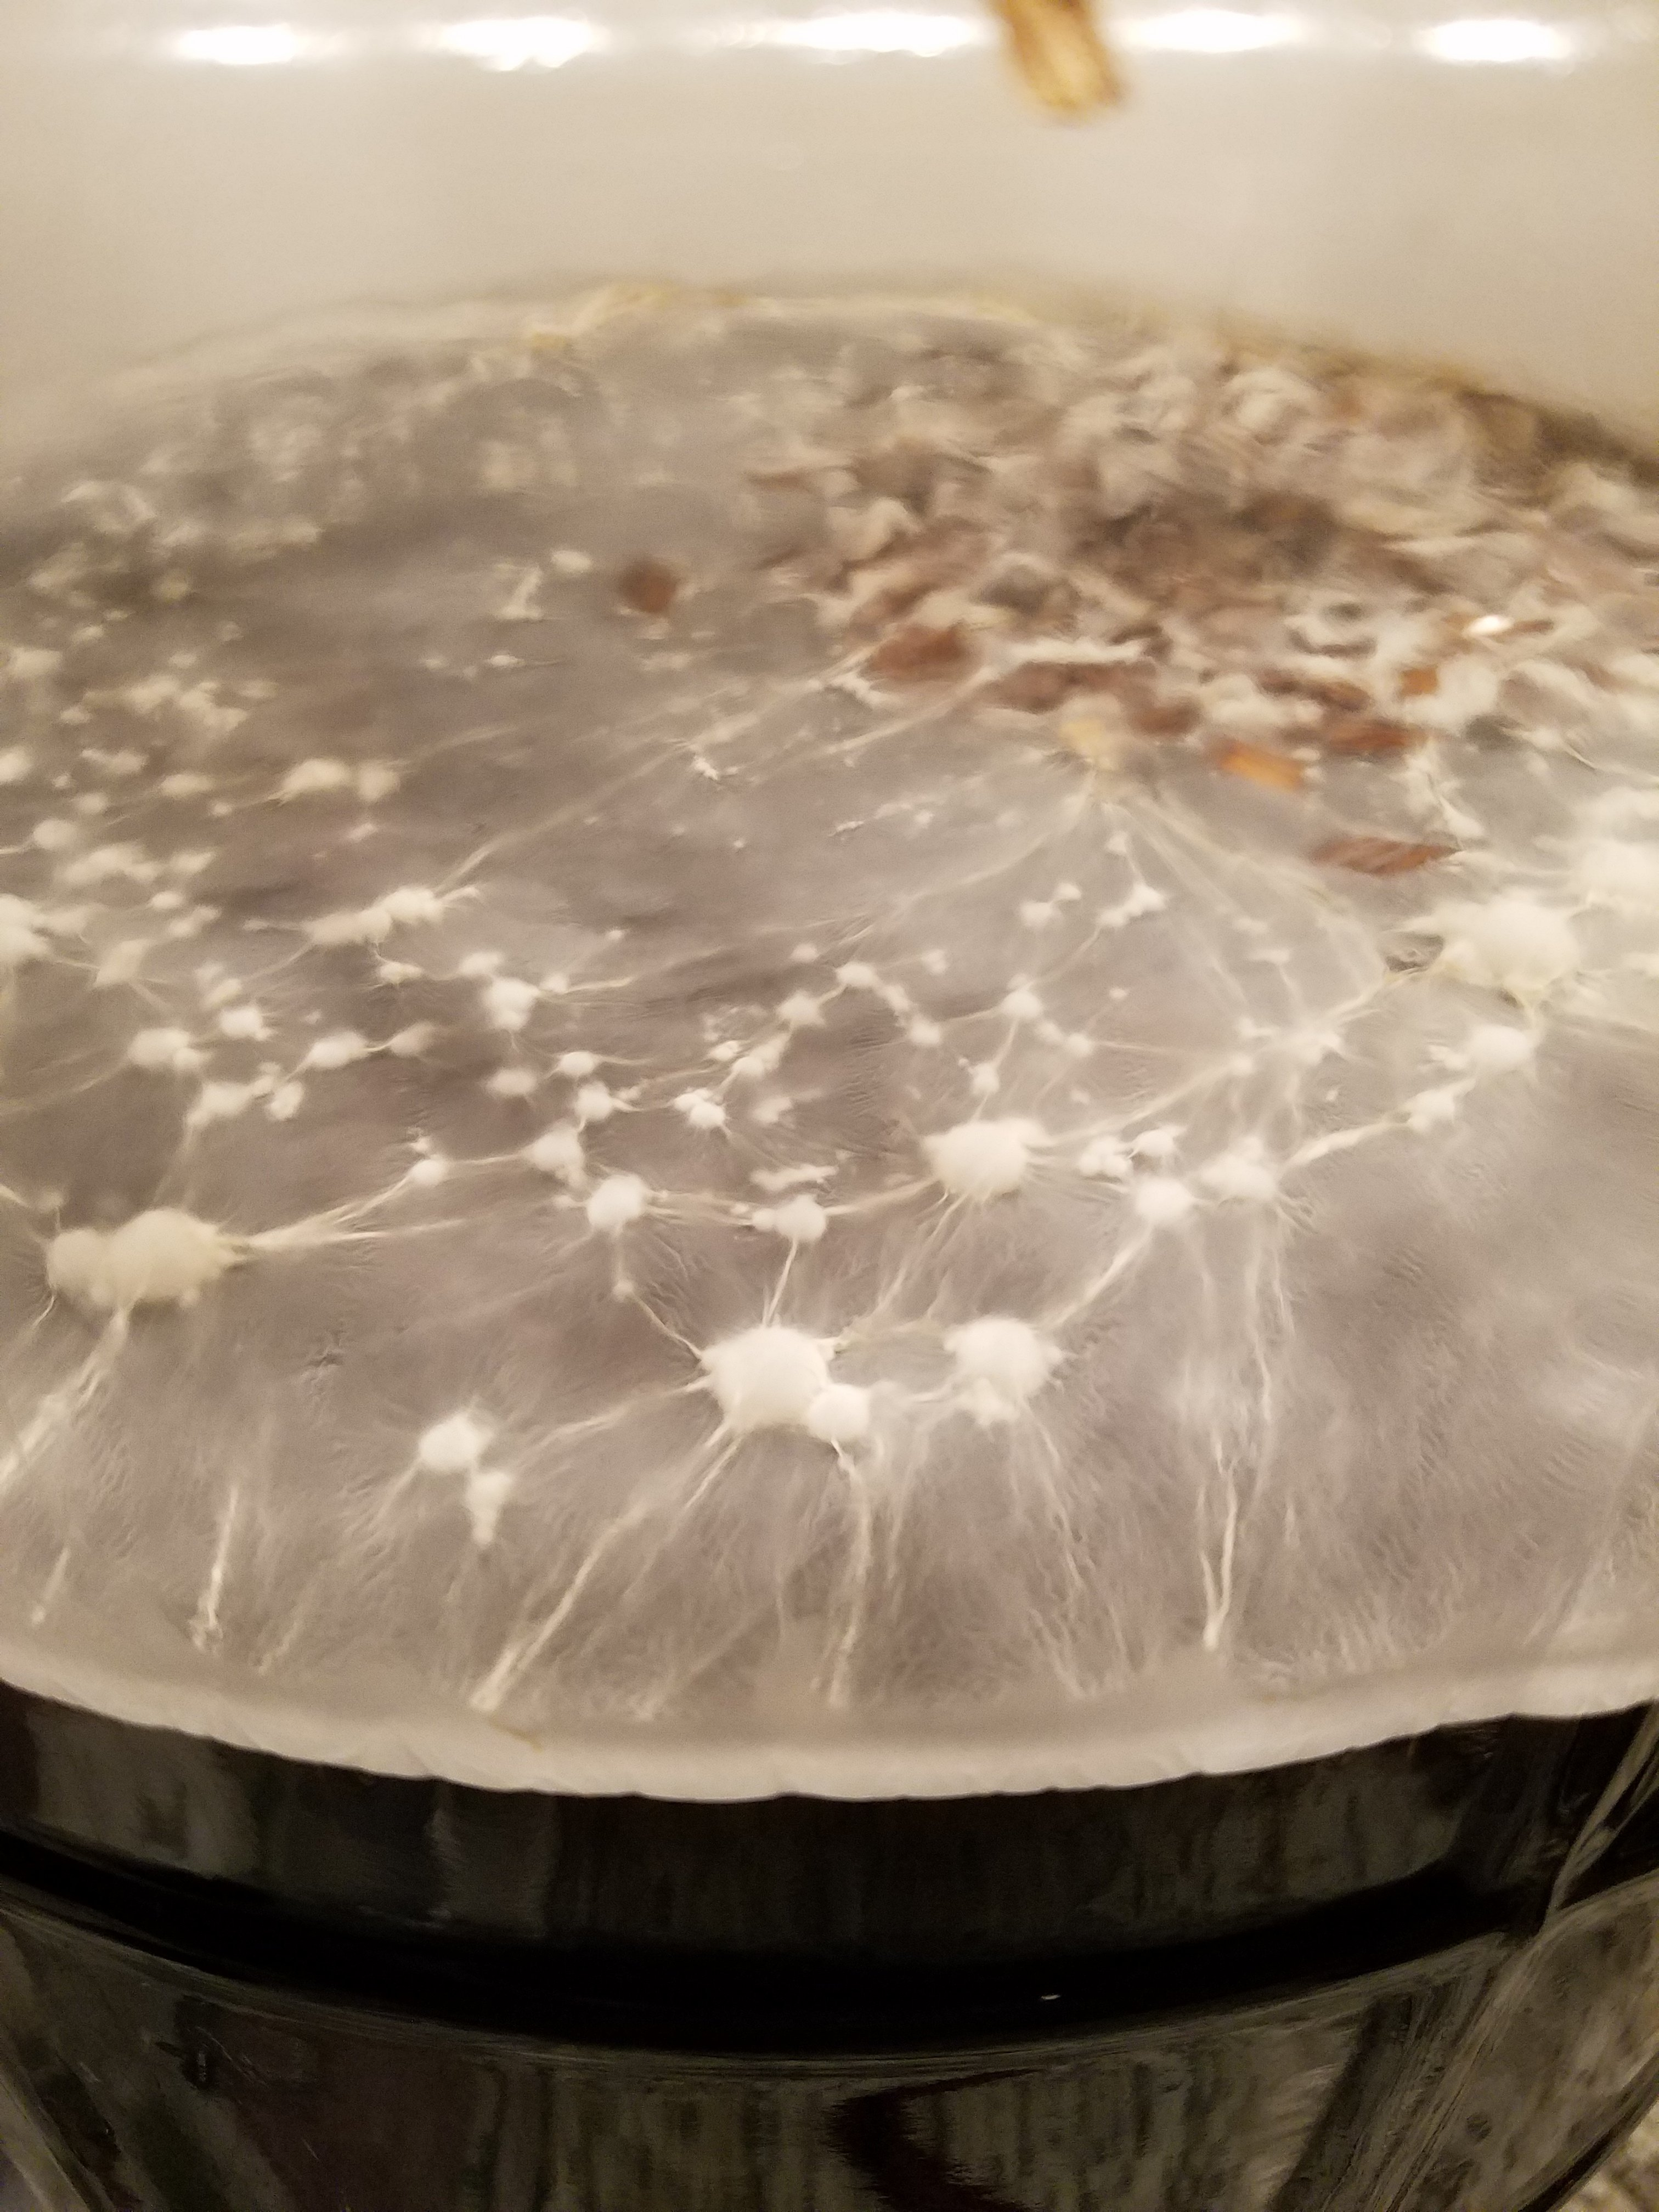 Pellicle Photo Collection | Page 63 | HomeBrewTalk.com - Beer, Wine, Mead,  & Cider Brewing Discussion Community.